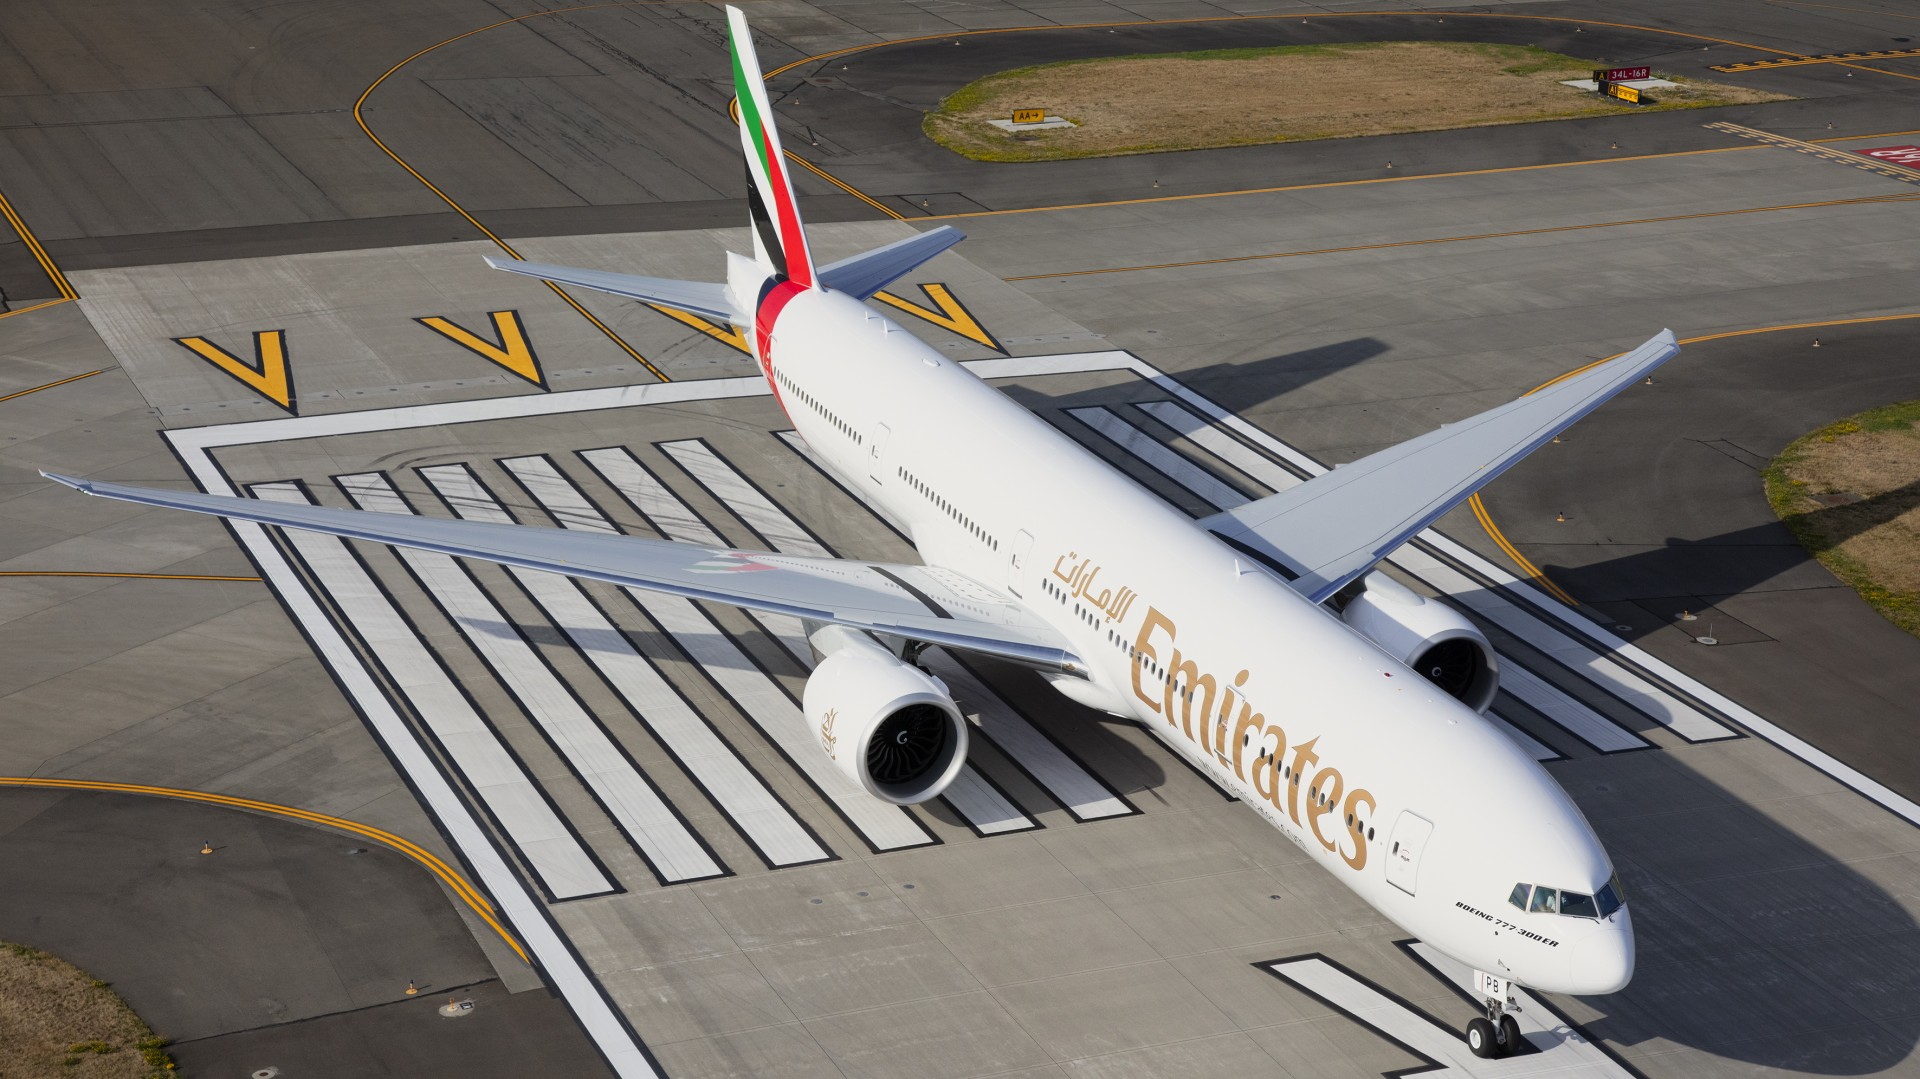 The Emirates Boeing 777-300ER